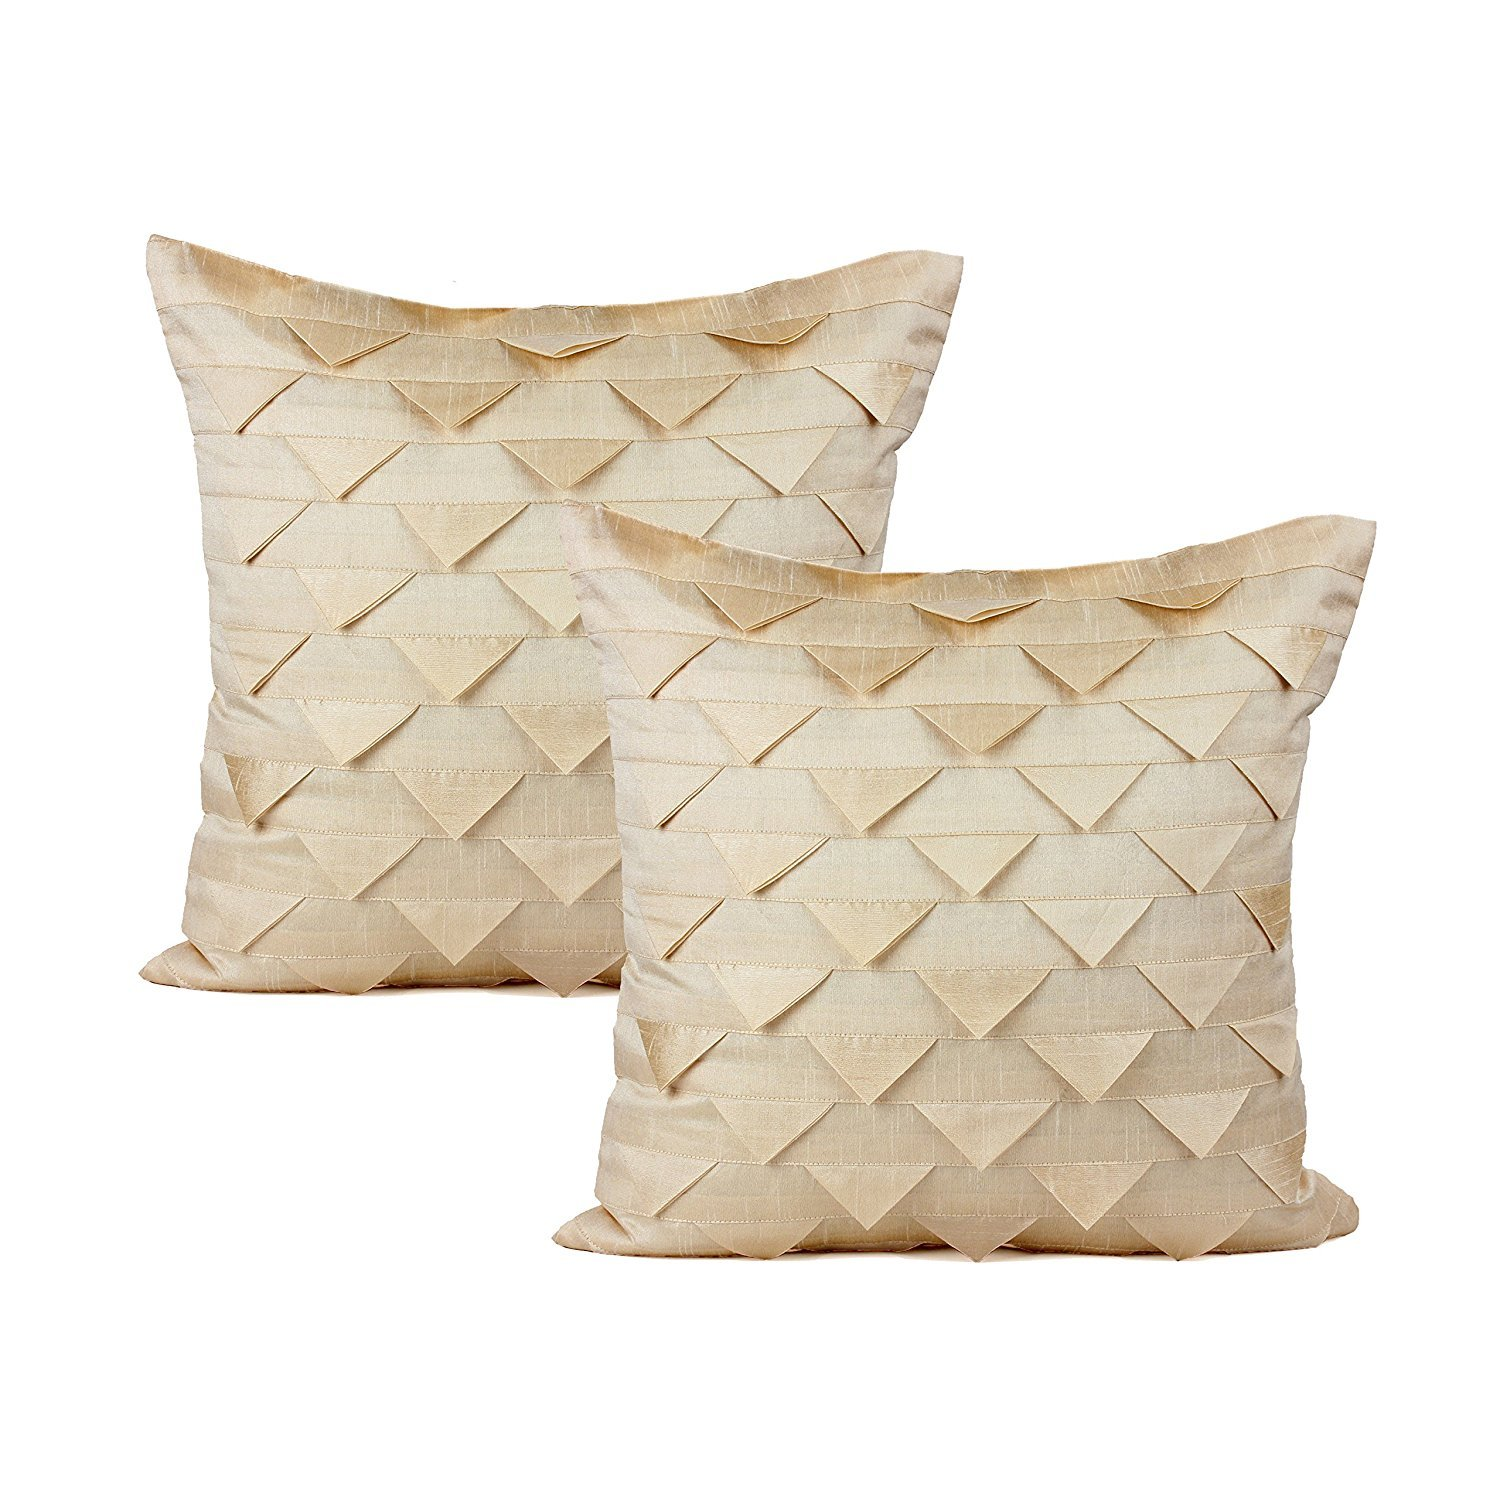 The White Petals Set of 2 Cream Throw Pillow Covers, Origami Style, Textured (Solid Cream, 12x12 inches)